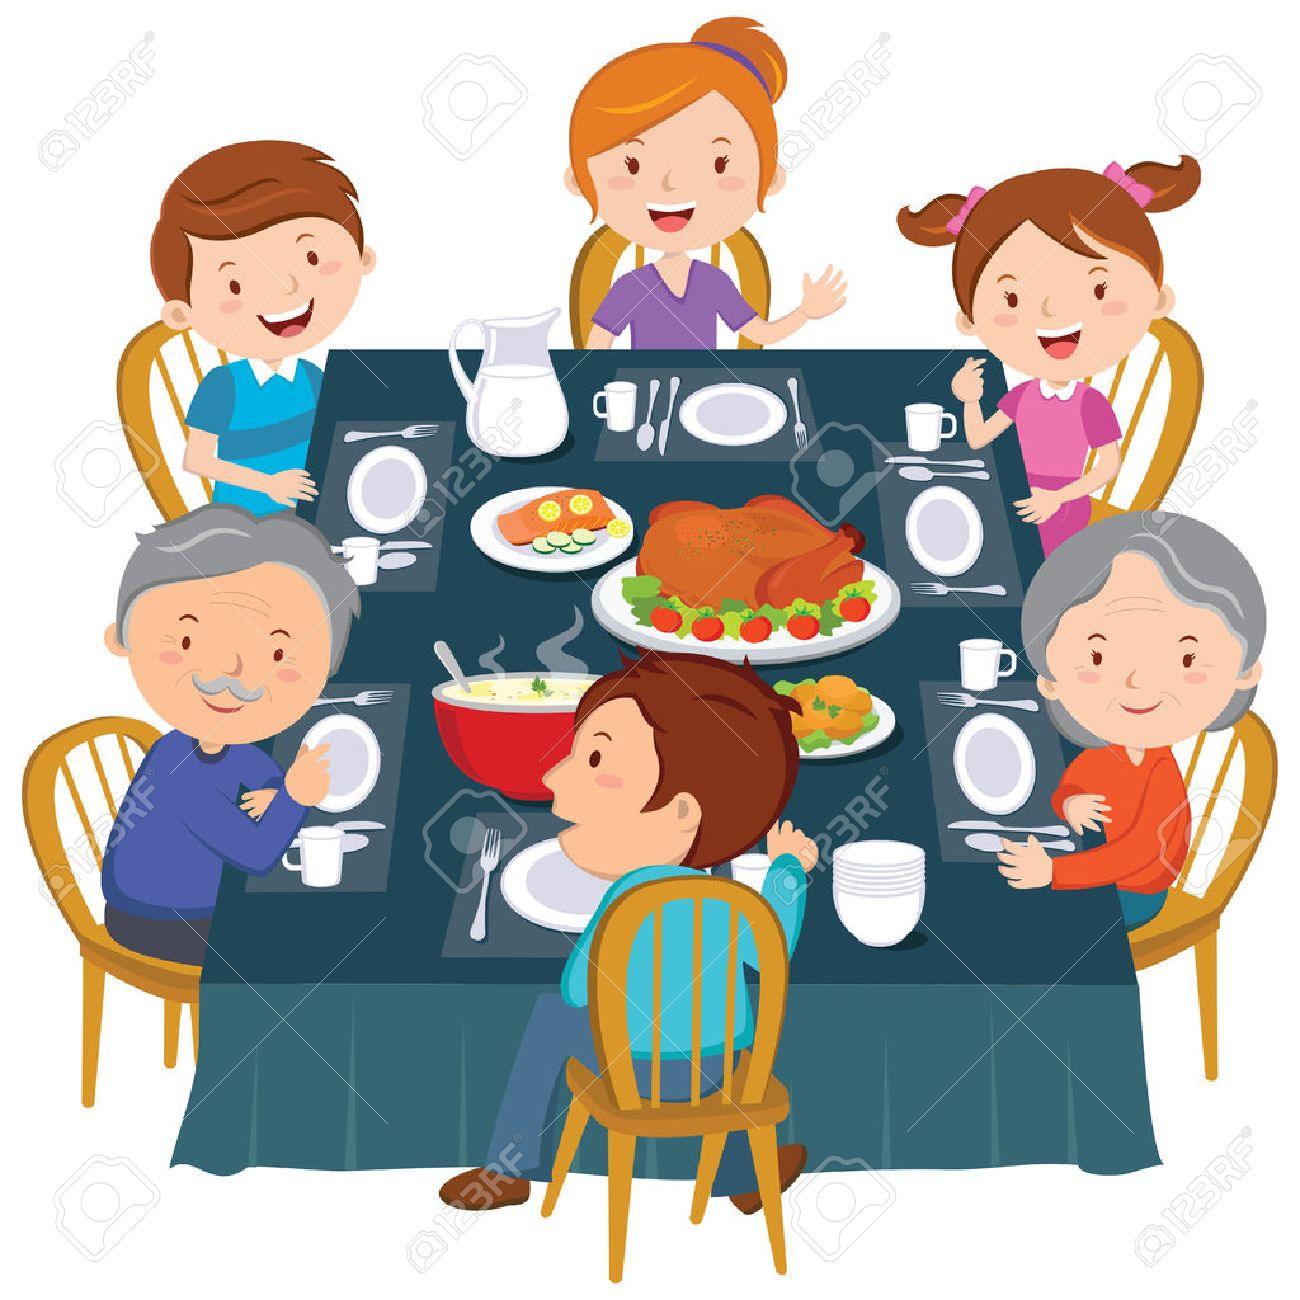 Family Eating Dinner Clipart.